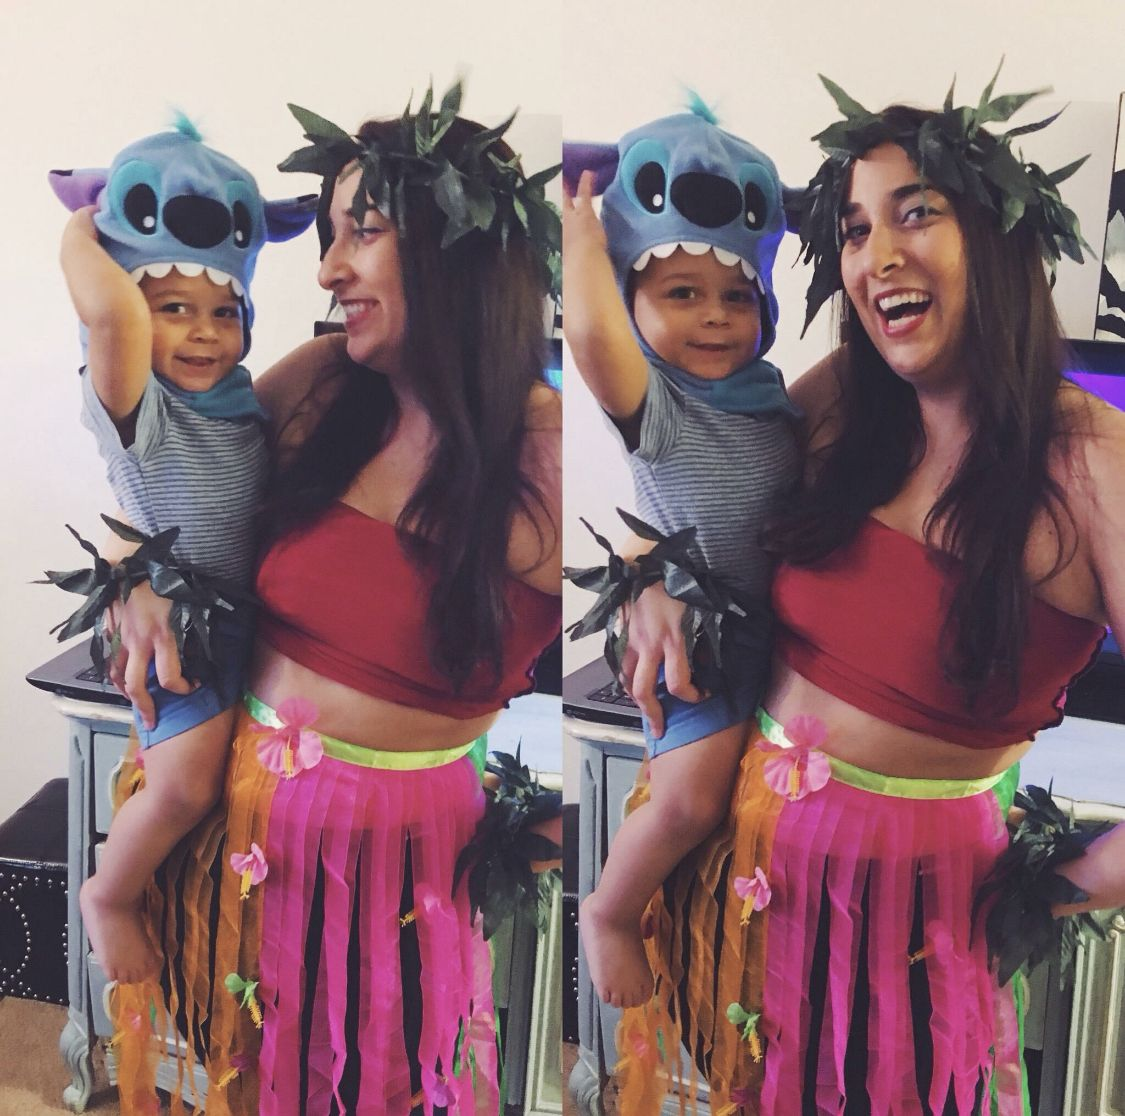 Halloween Costume Boy Costume Mother And Son Costume Lilo And Stitch Cu Mommy Baby Halloween Costumes Mother Son Halloween Costumes Baby Halloween Costumes